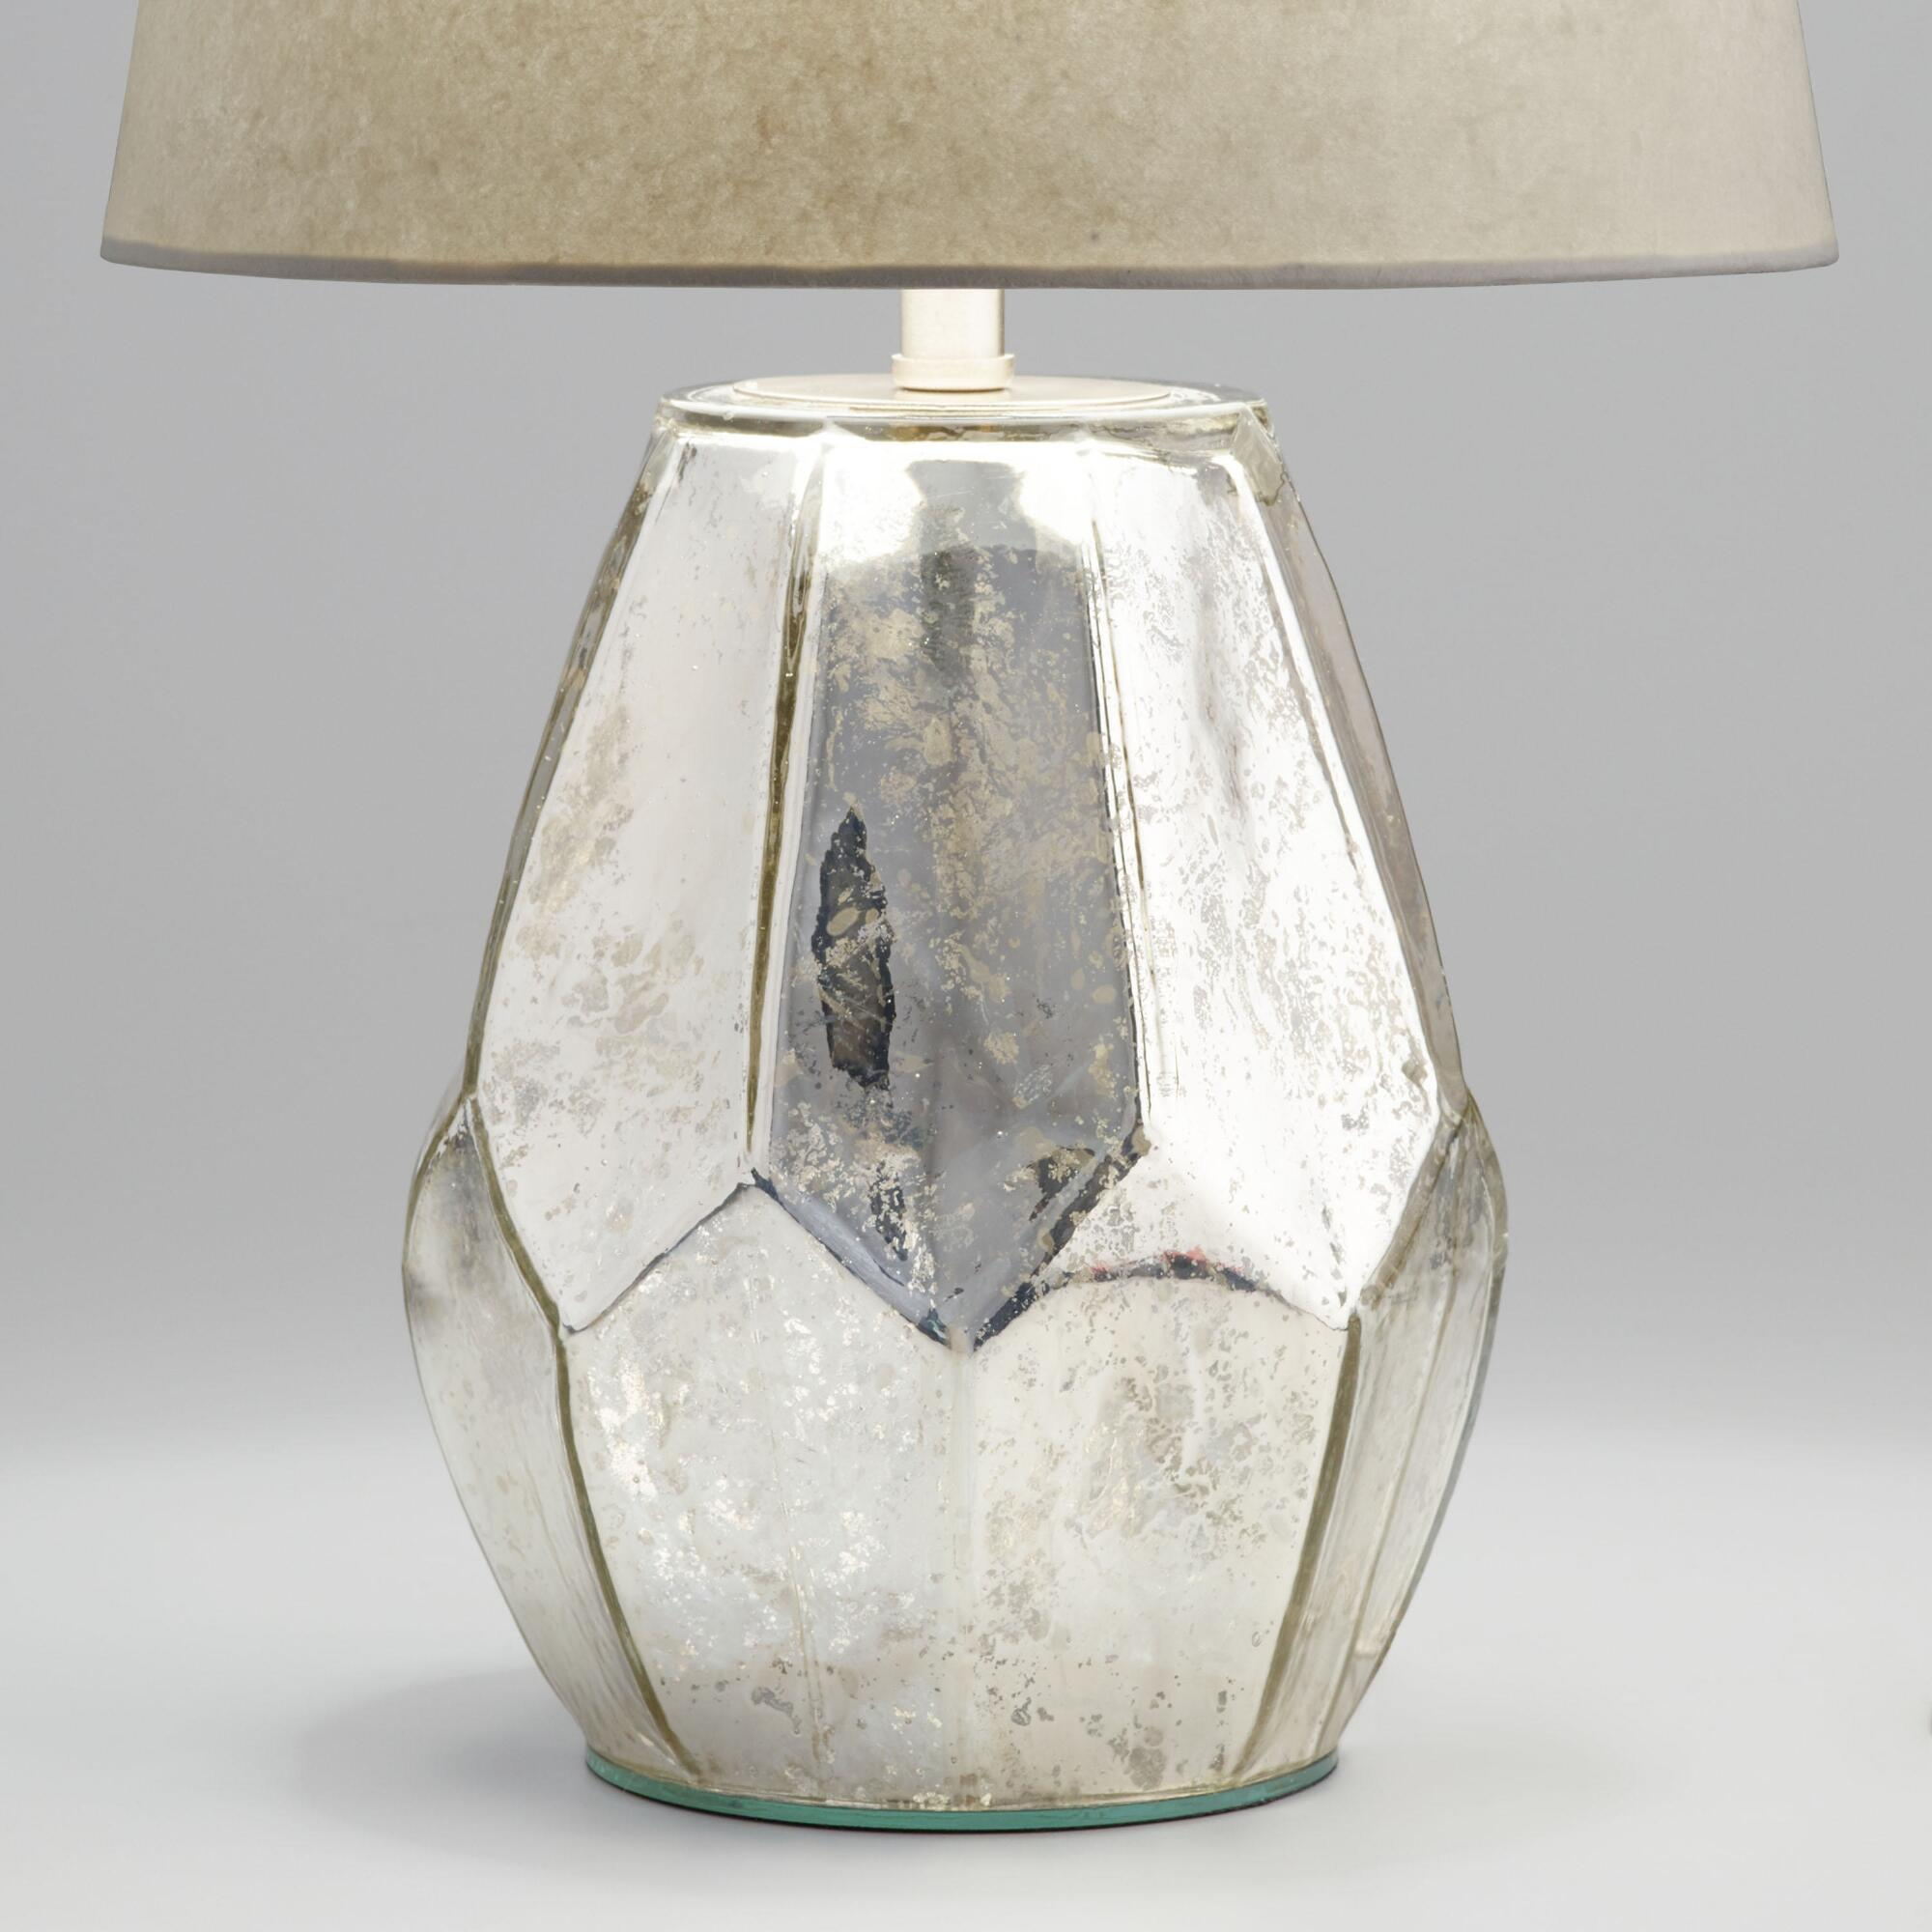 Antique Mercury Faceted Glass Accent Lamp Base by World Market